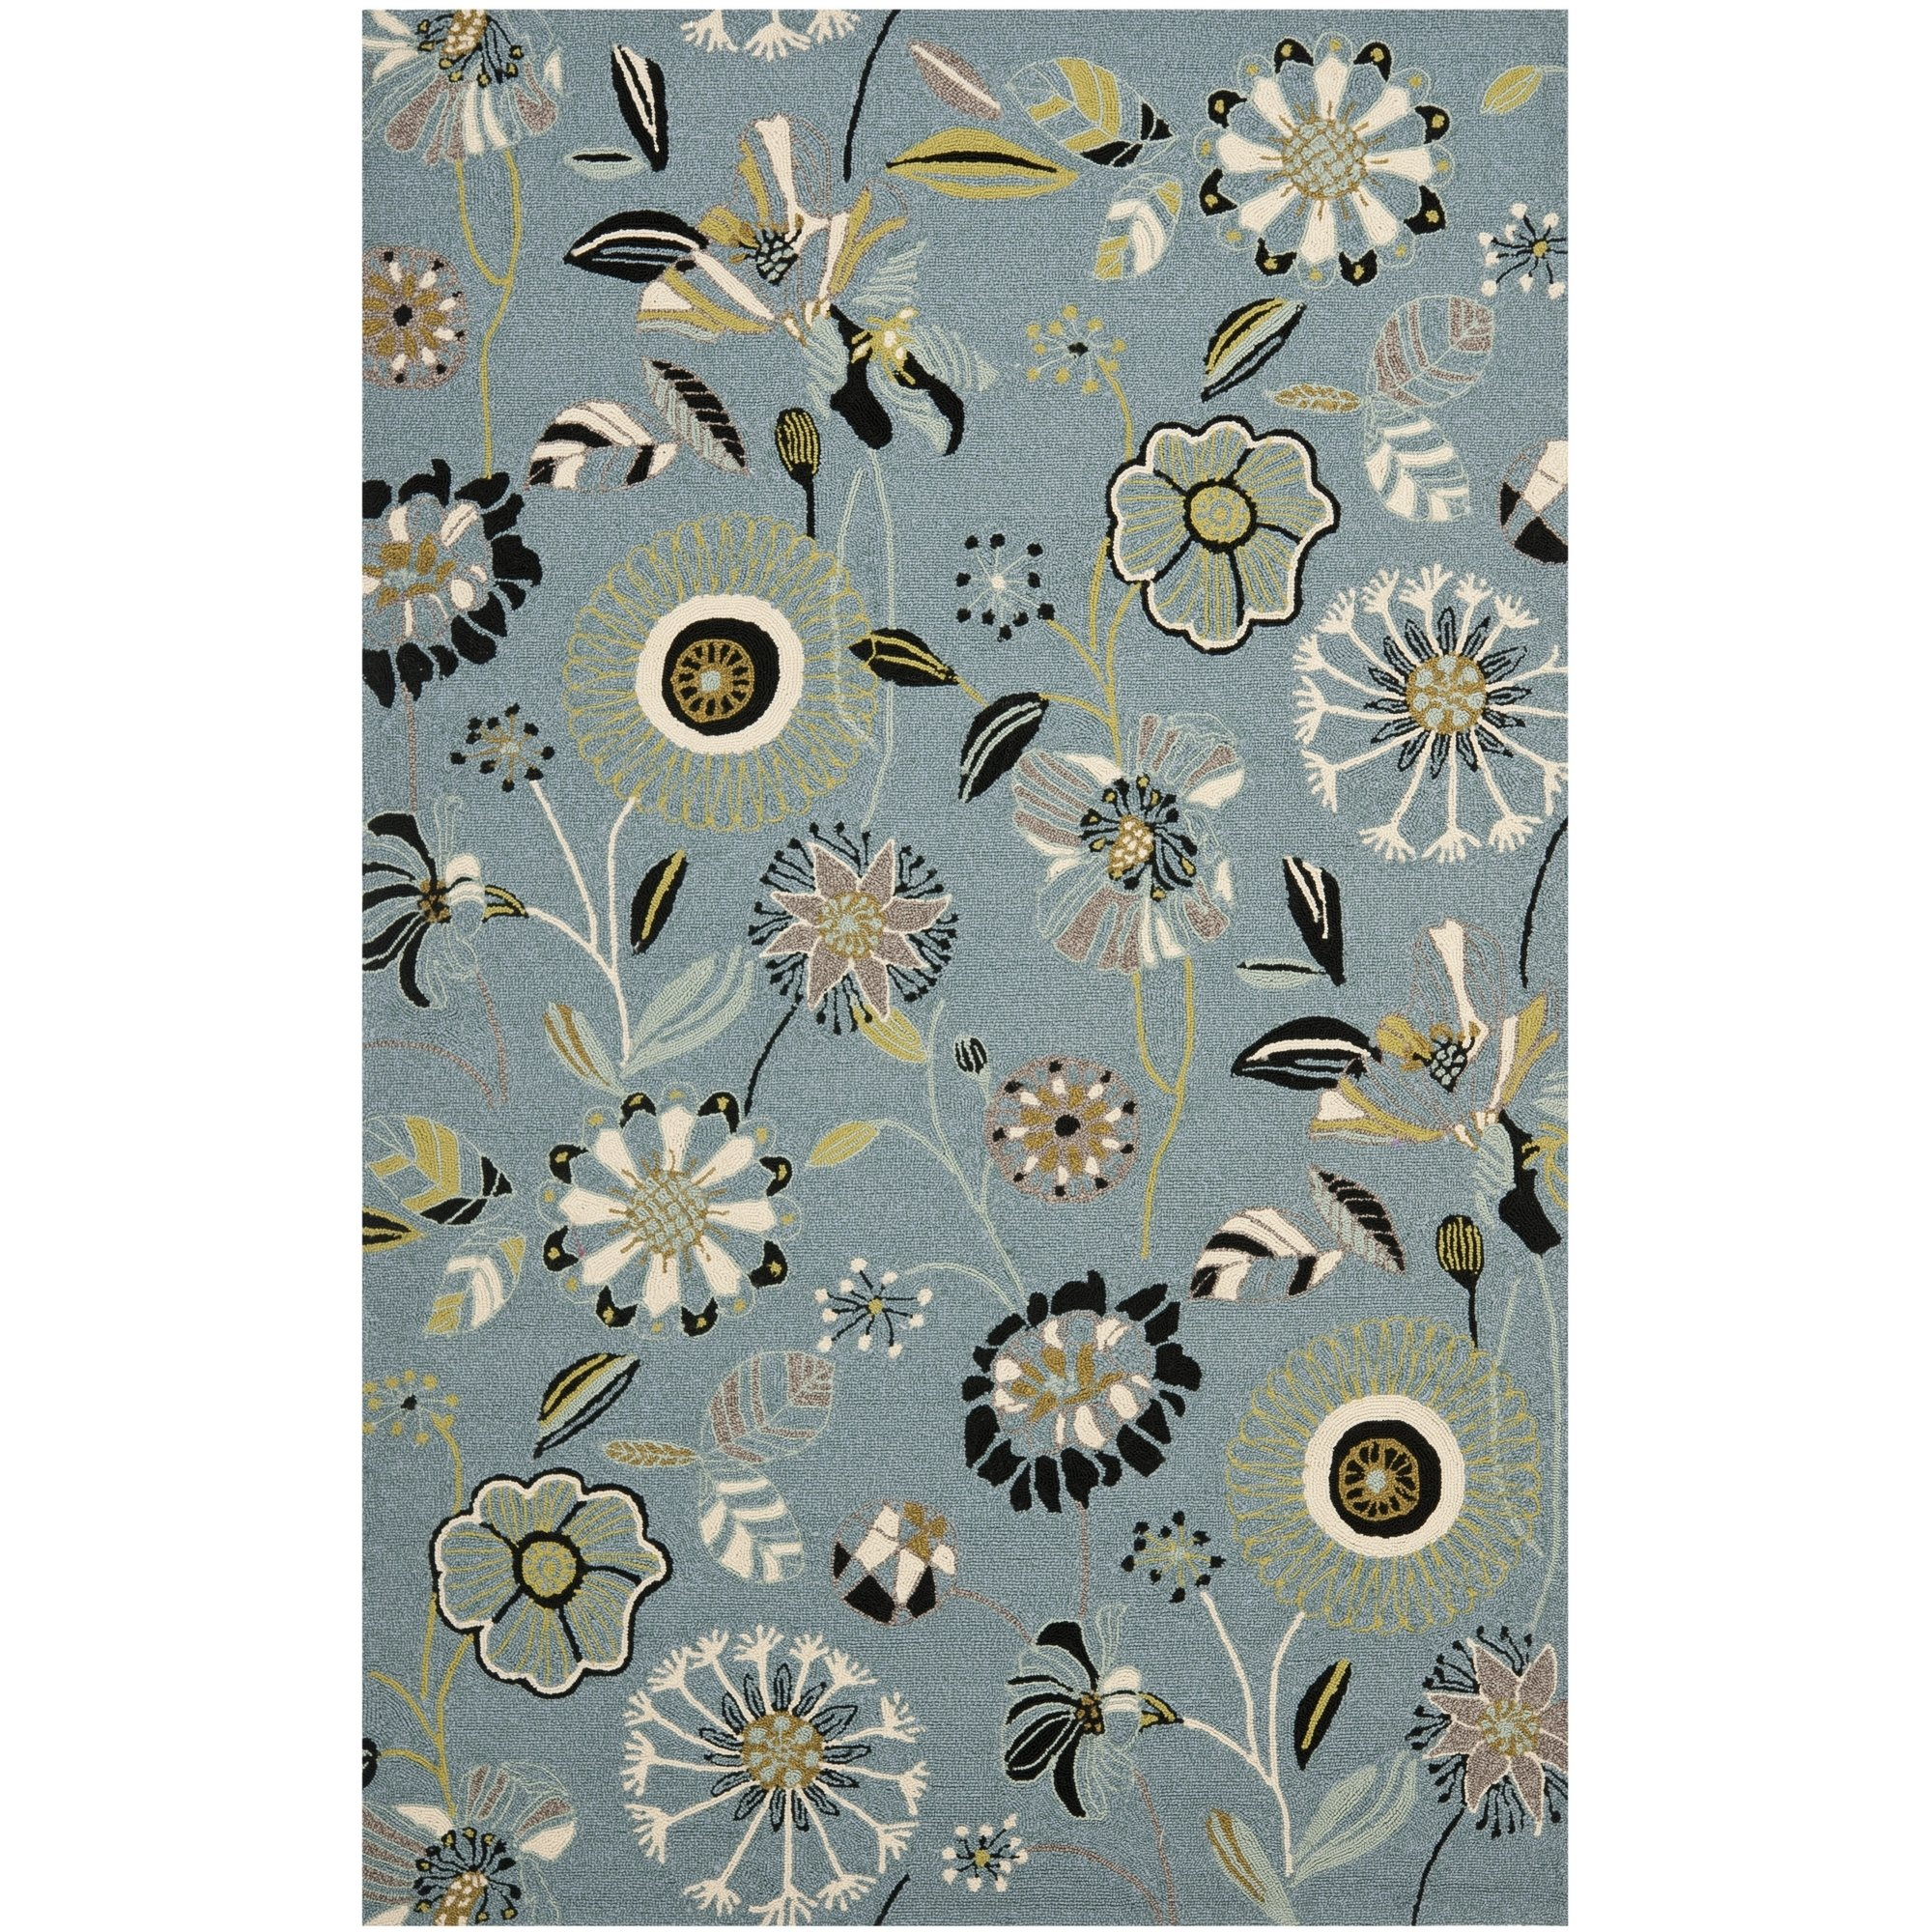 Safavieh Four Seasons Collection FRS482B Hand-Hooked Blue and Multi Indoor/ Outdoor Area Rug (8' x 10') by Safavieh